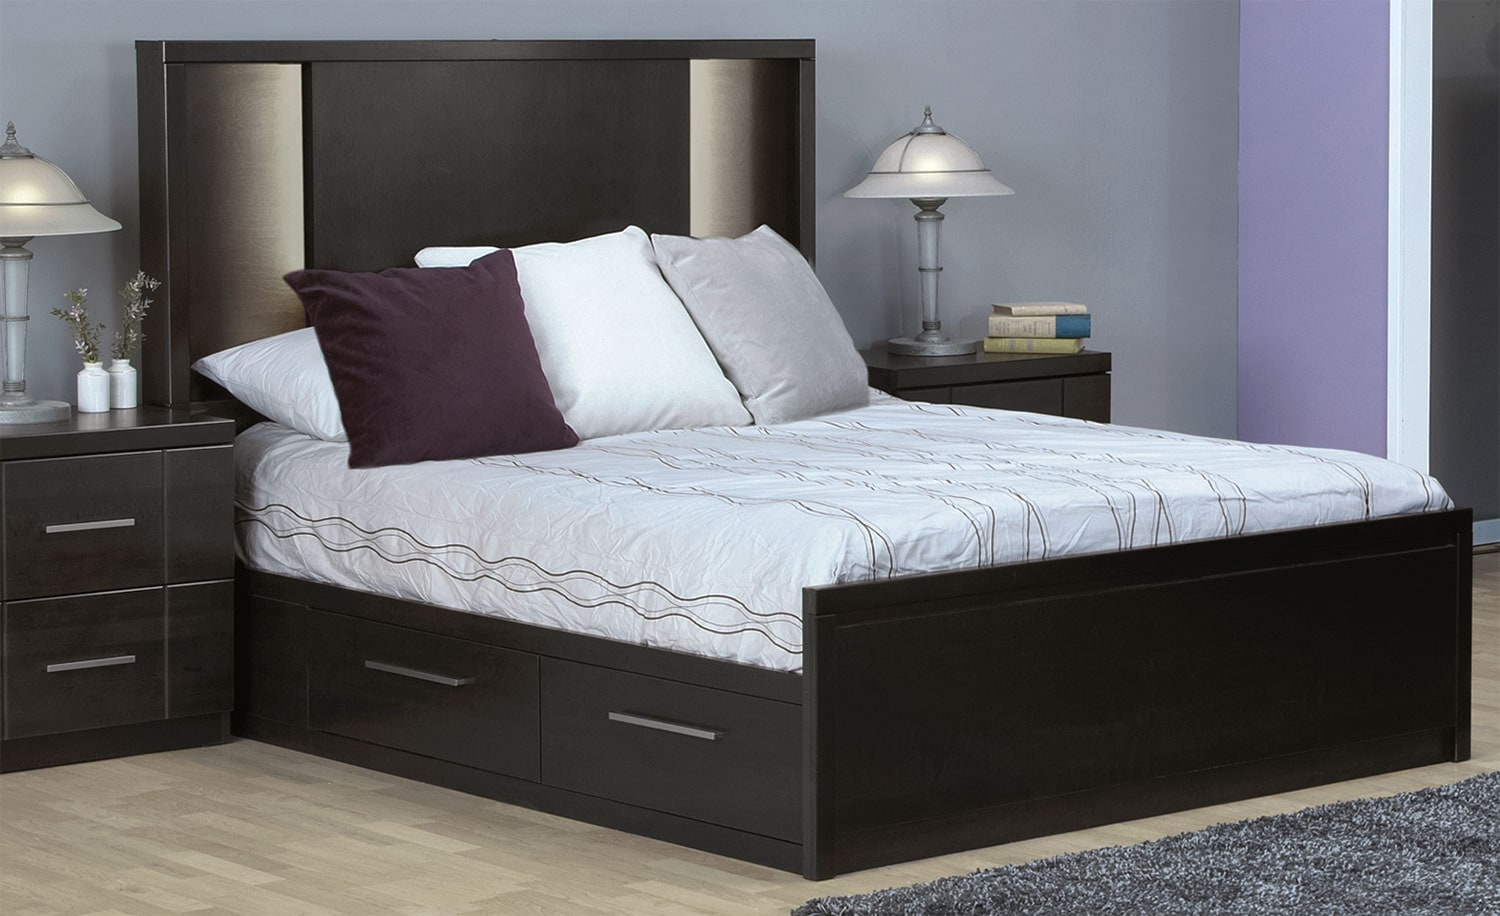 queen size bed leonu0027s - King Size Bed With Storage